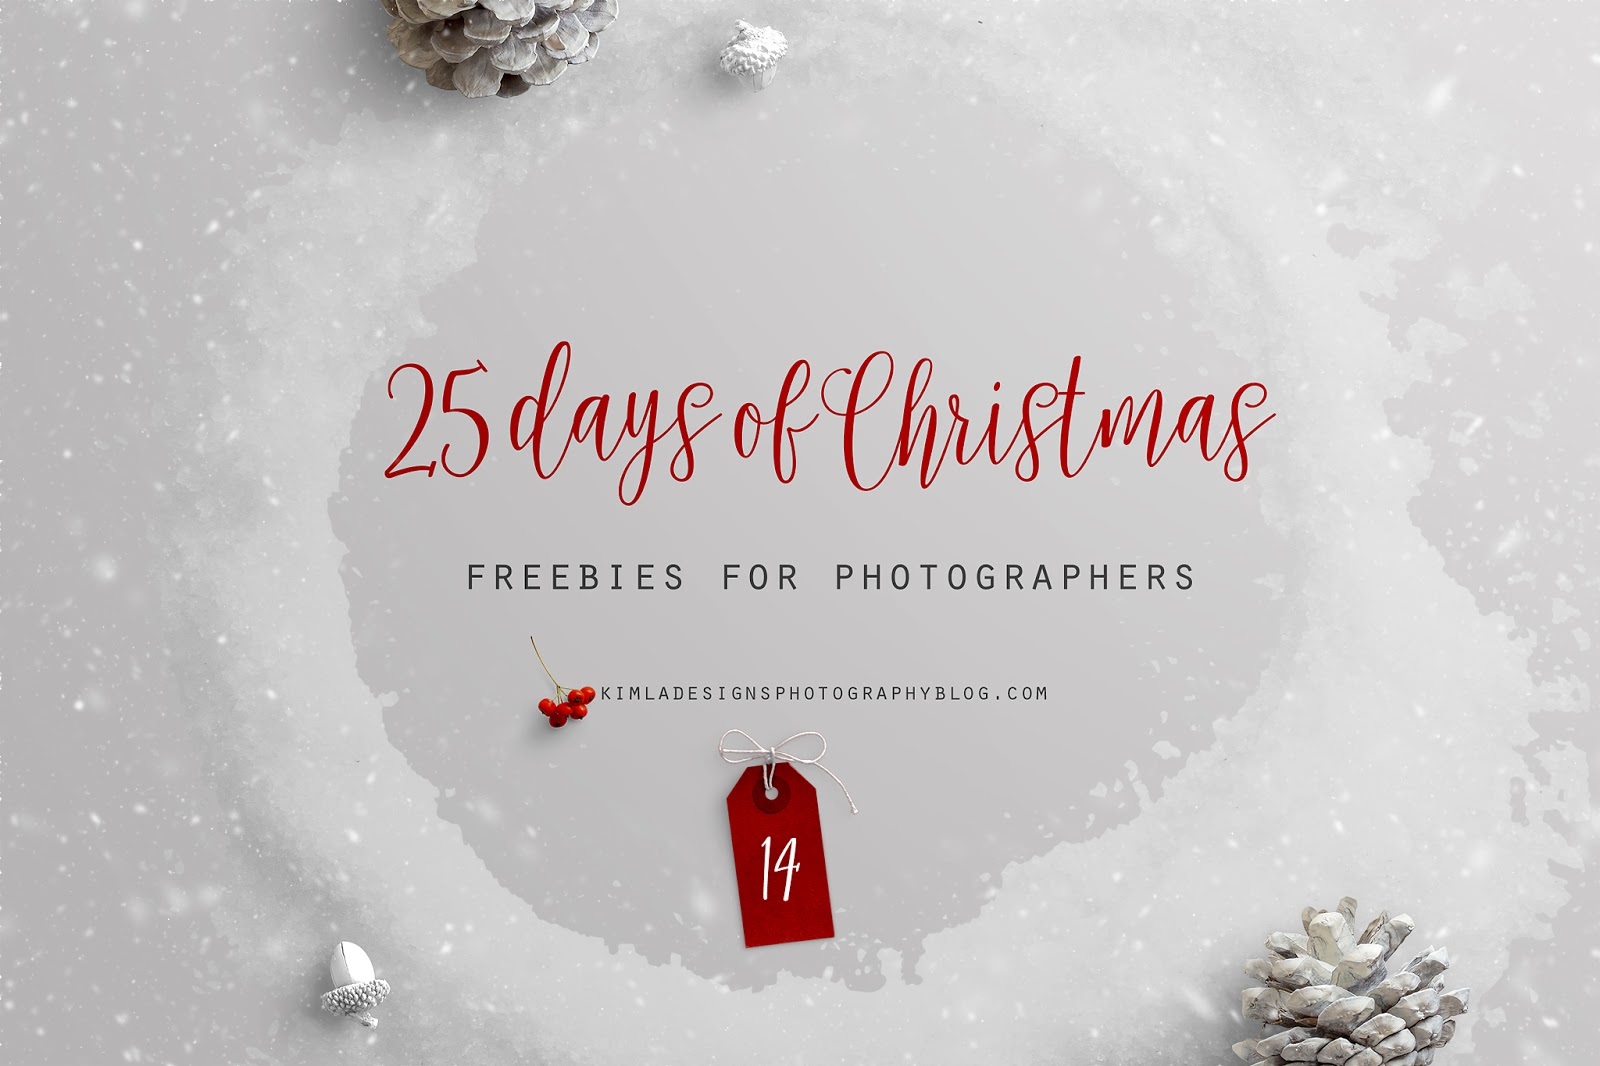 25 Days of Christmas Freebies for Photographers Day 14th